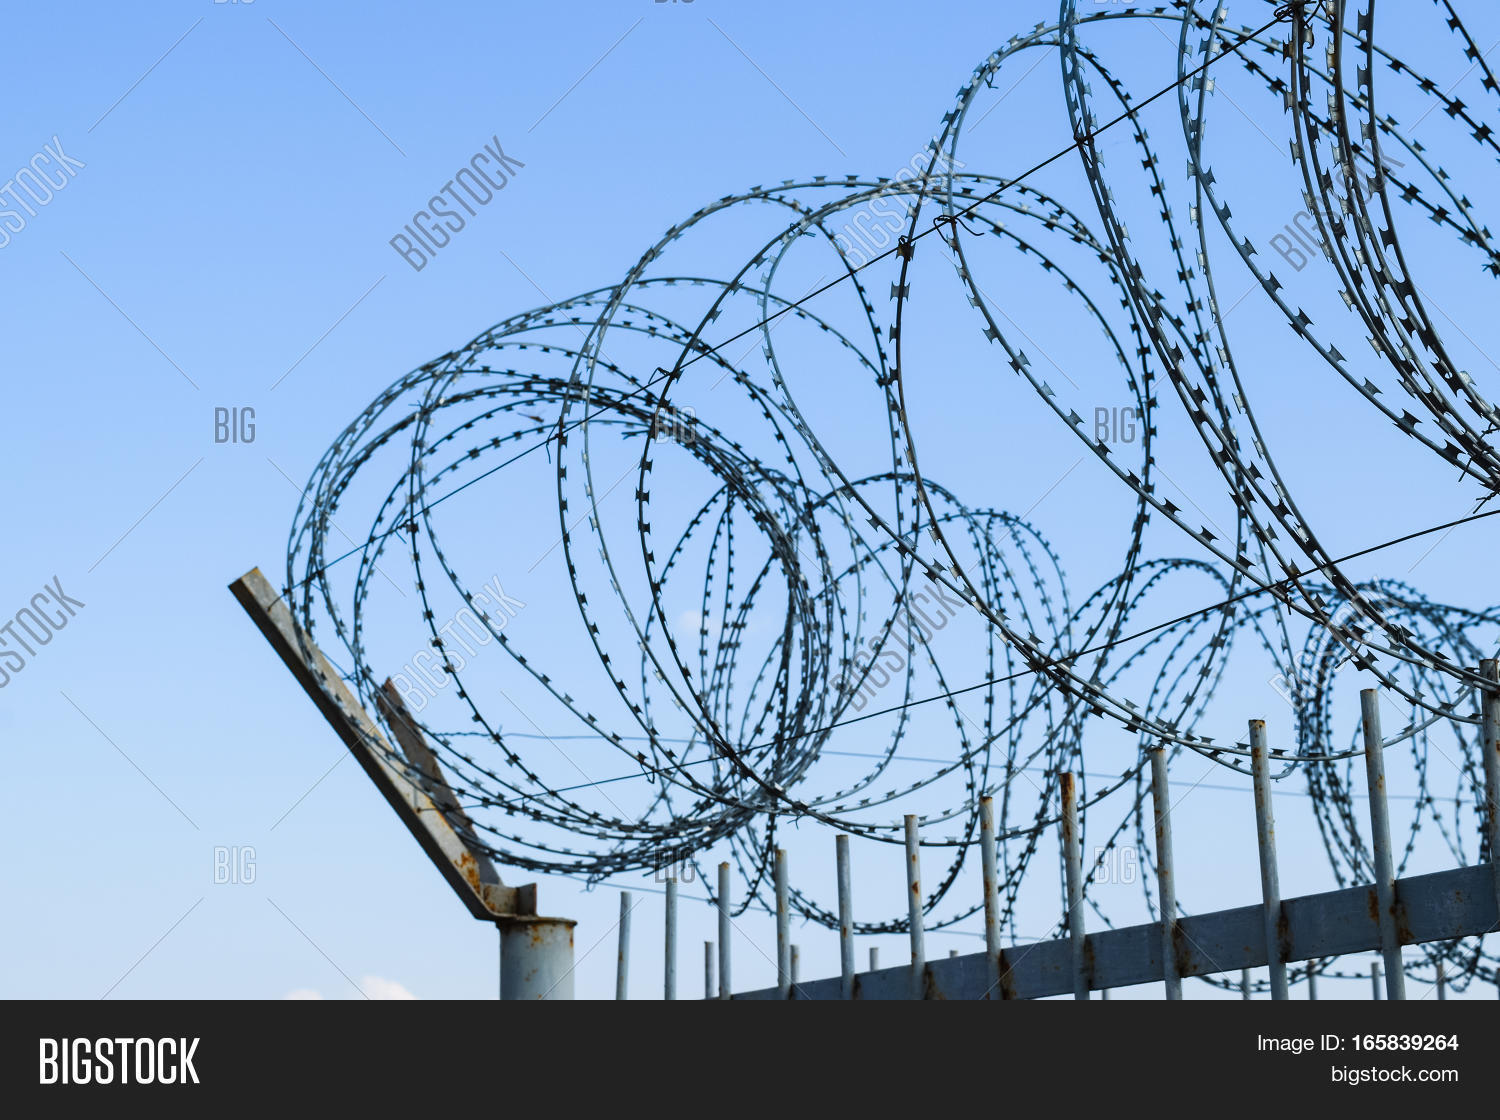 Barbed Wire On Fence. Image & Photo (Free Trial) | Bigstock